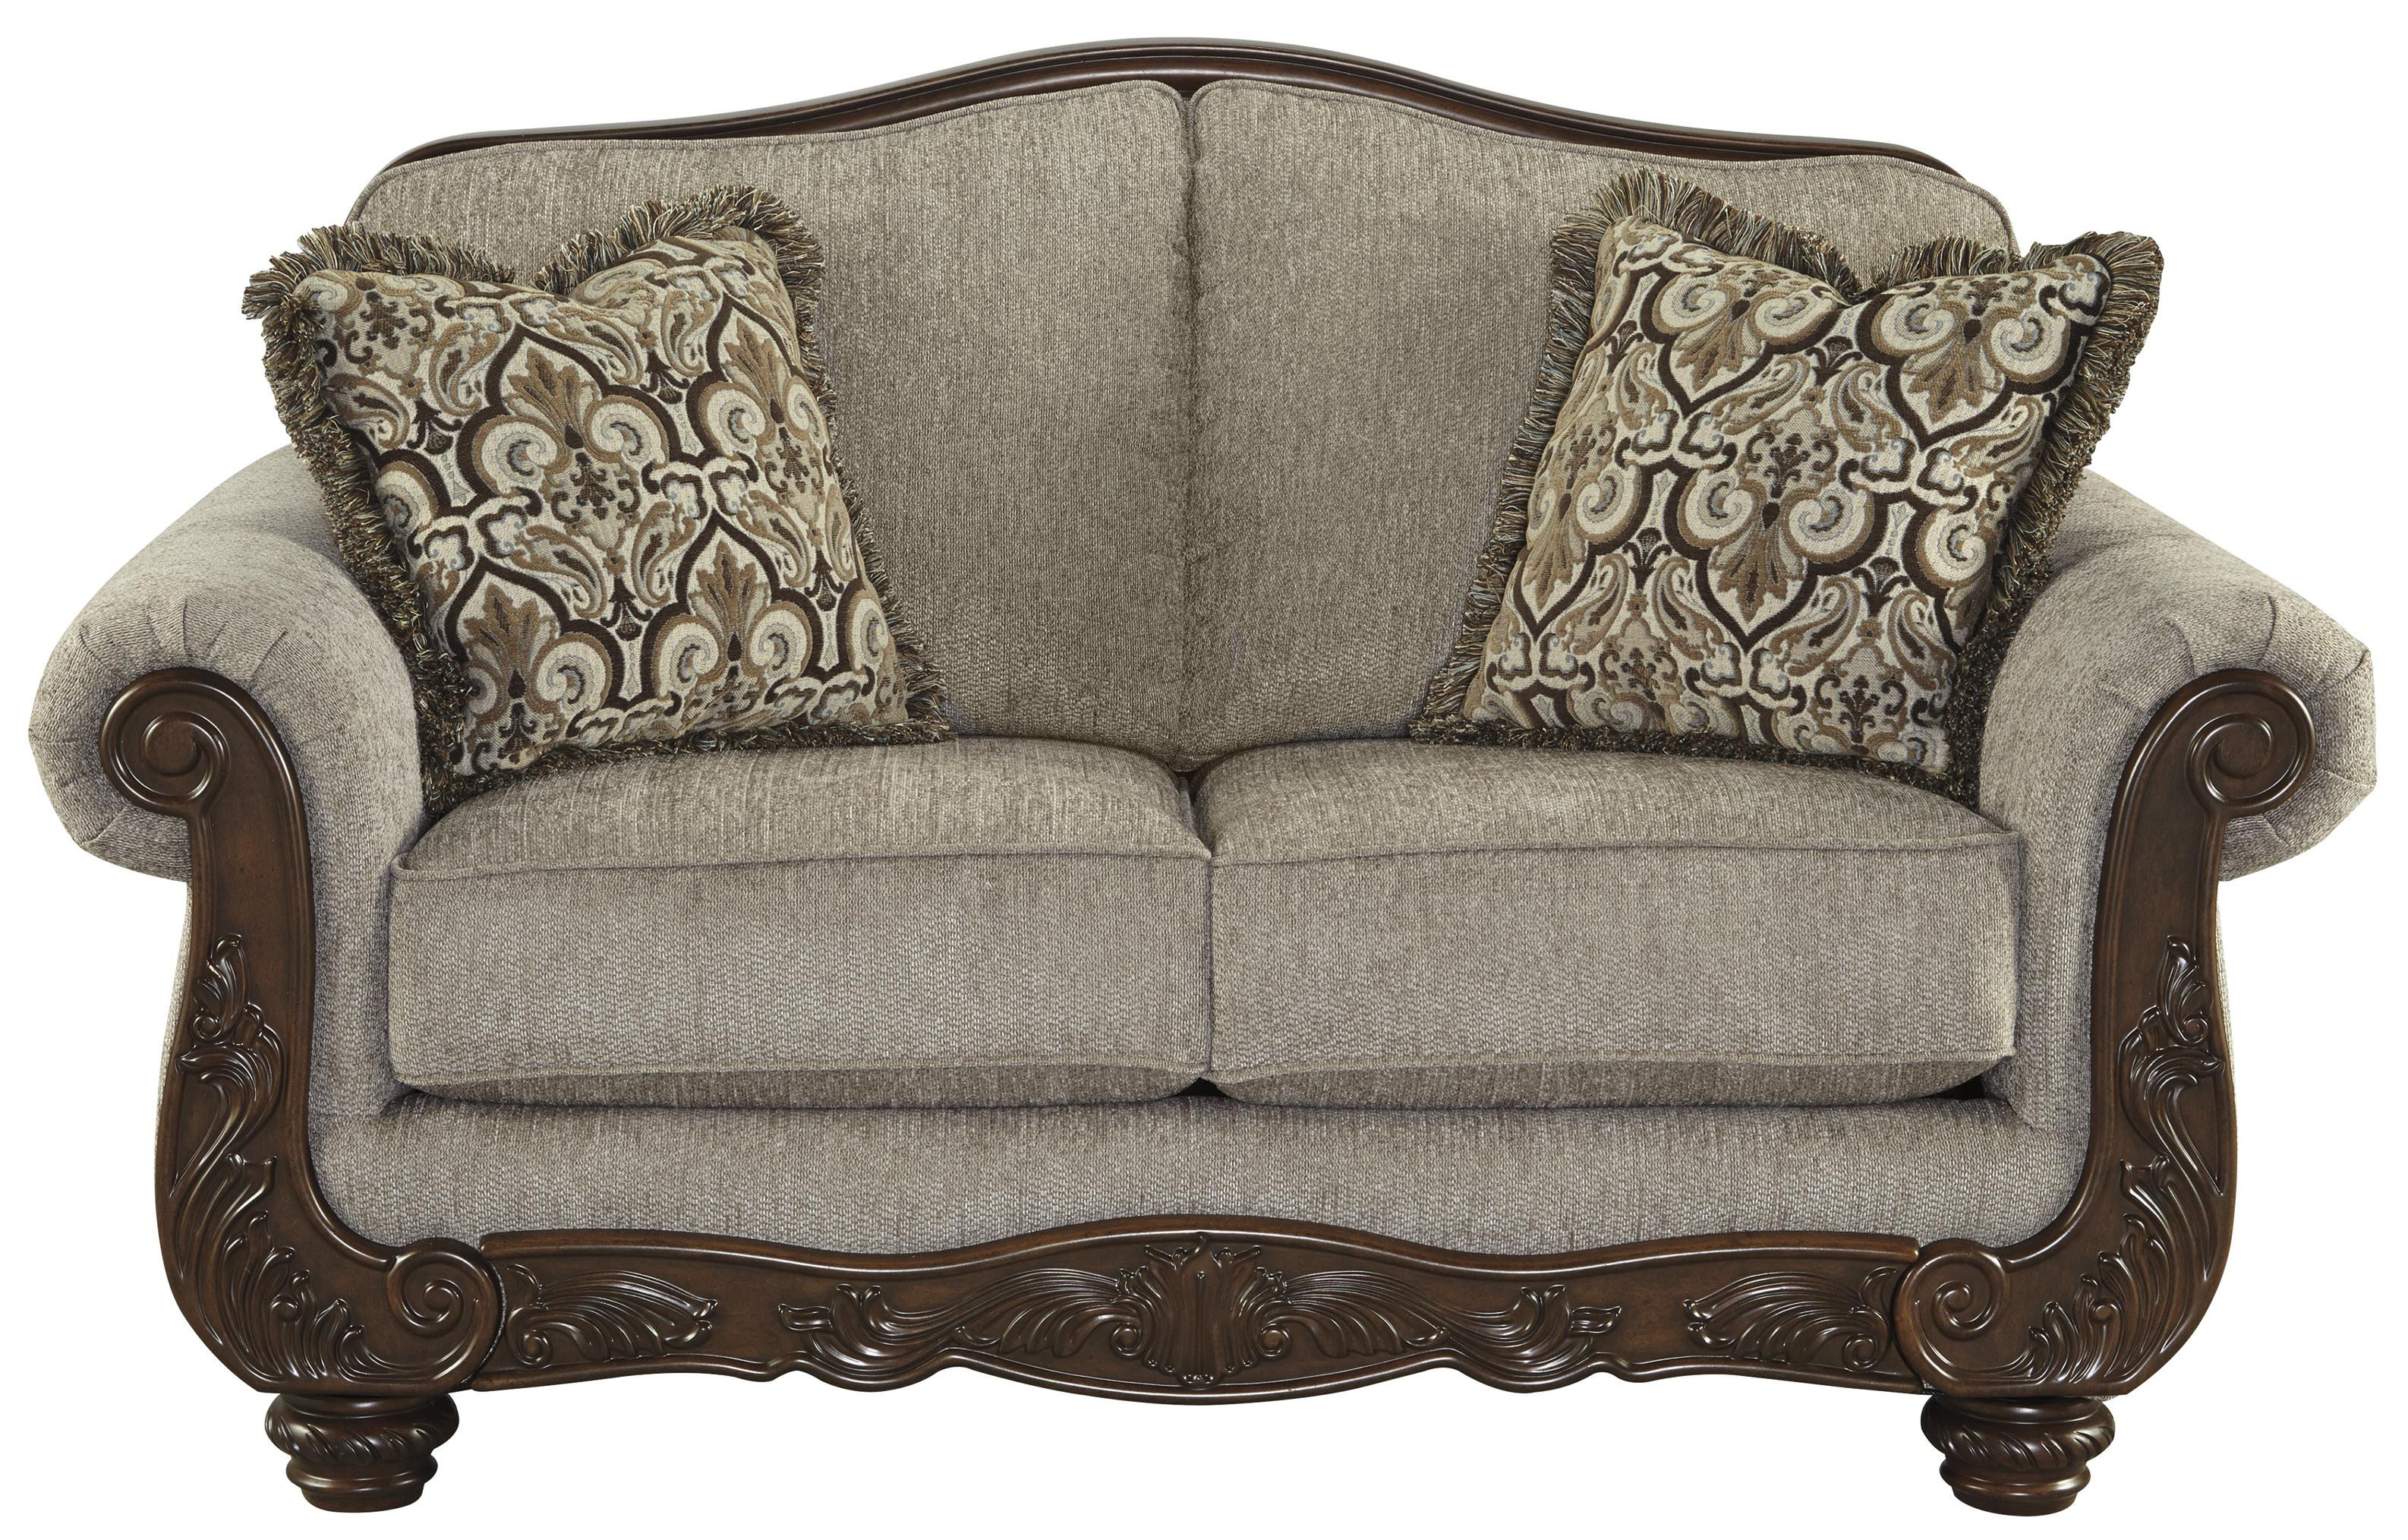 Signature Design by Ashley Cecilyn Loveseat - Item Number: 5760335